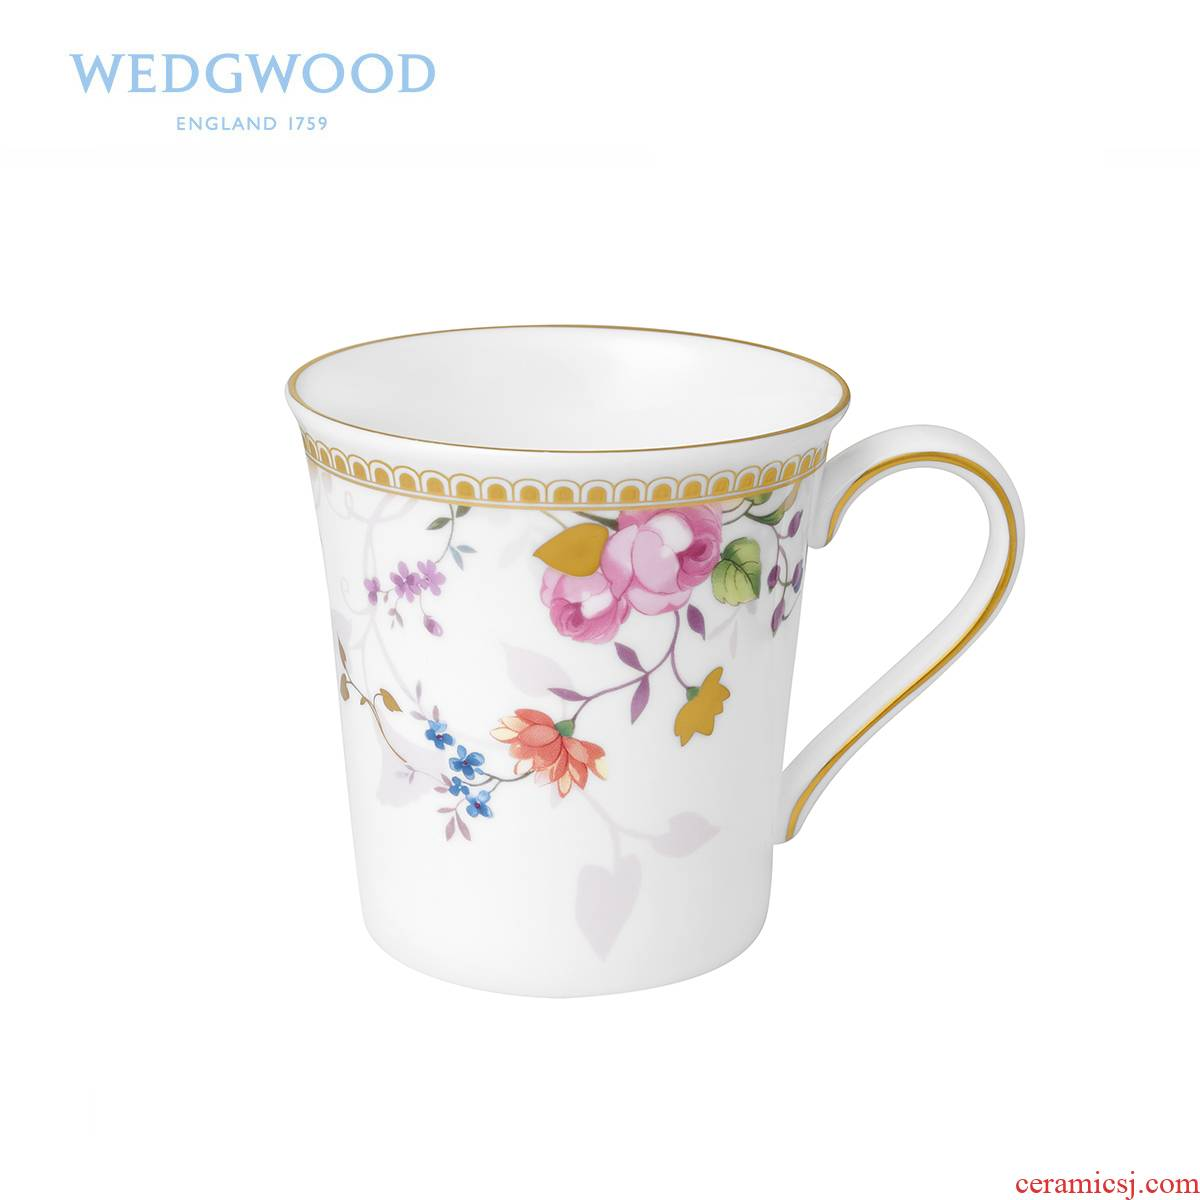 British Wedgwood Rose Gold Gold Rose ipads China mugs, open the tea/coffee cup